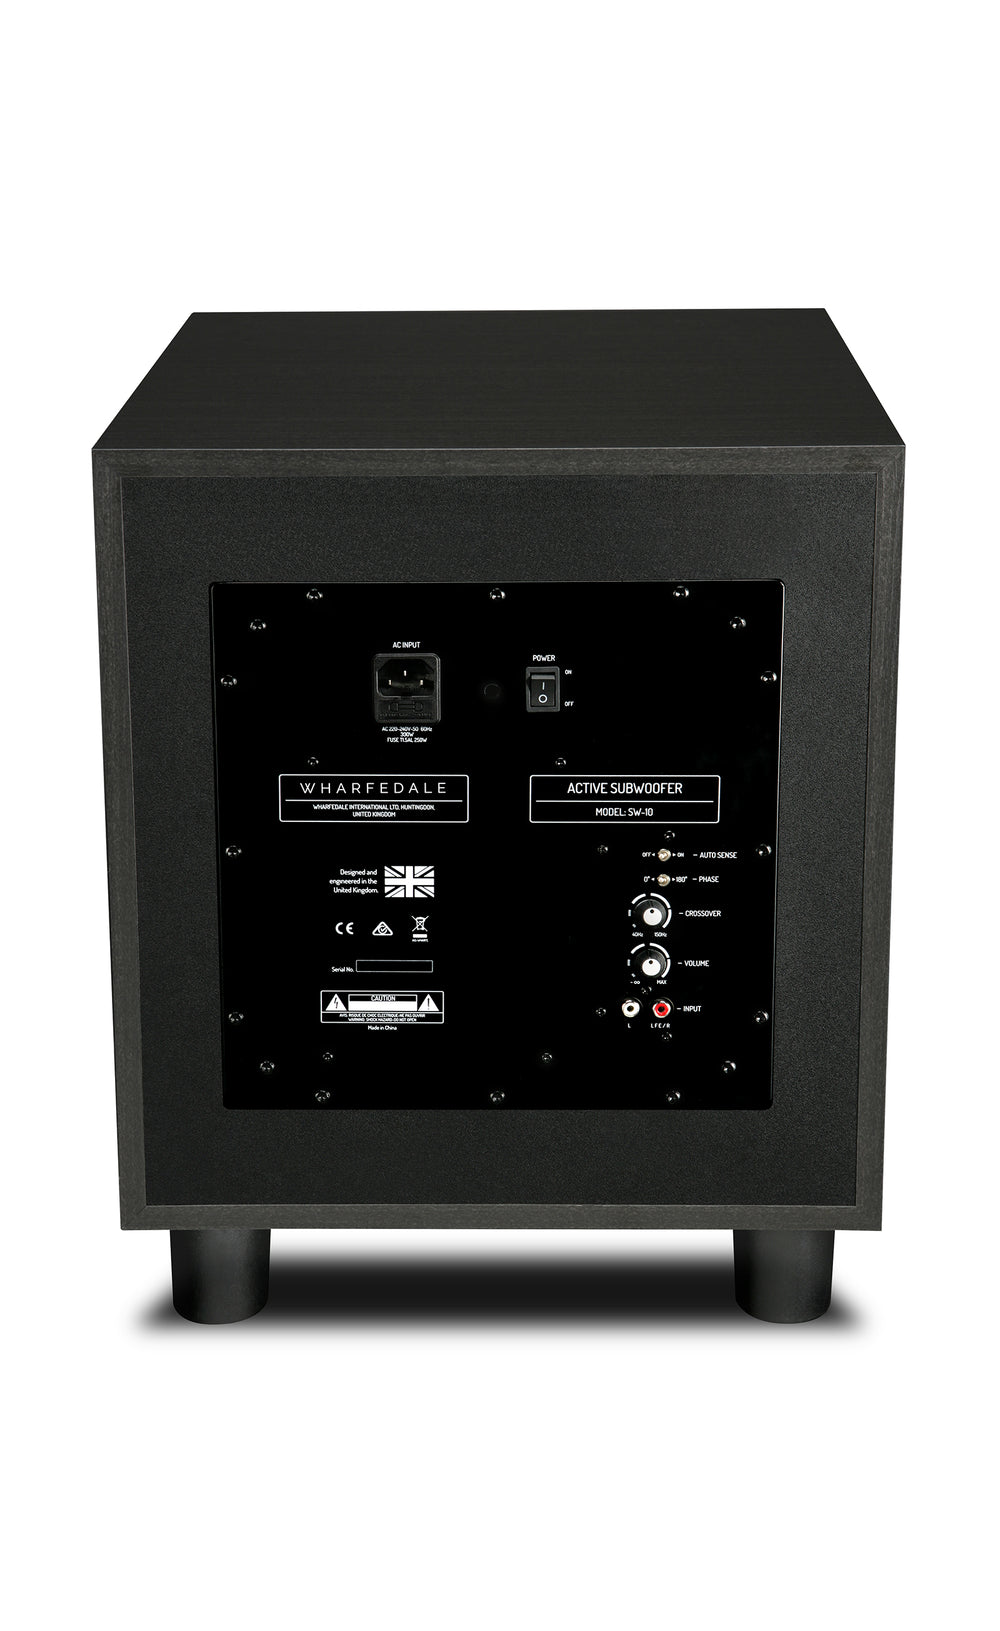 SW-10 200W Subwoofer